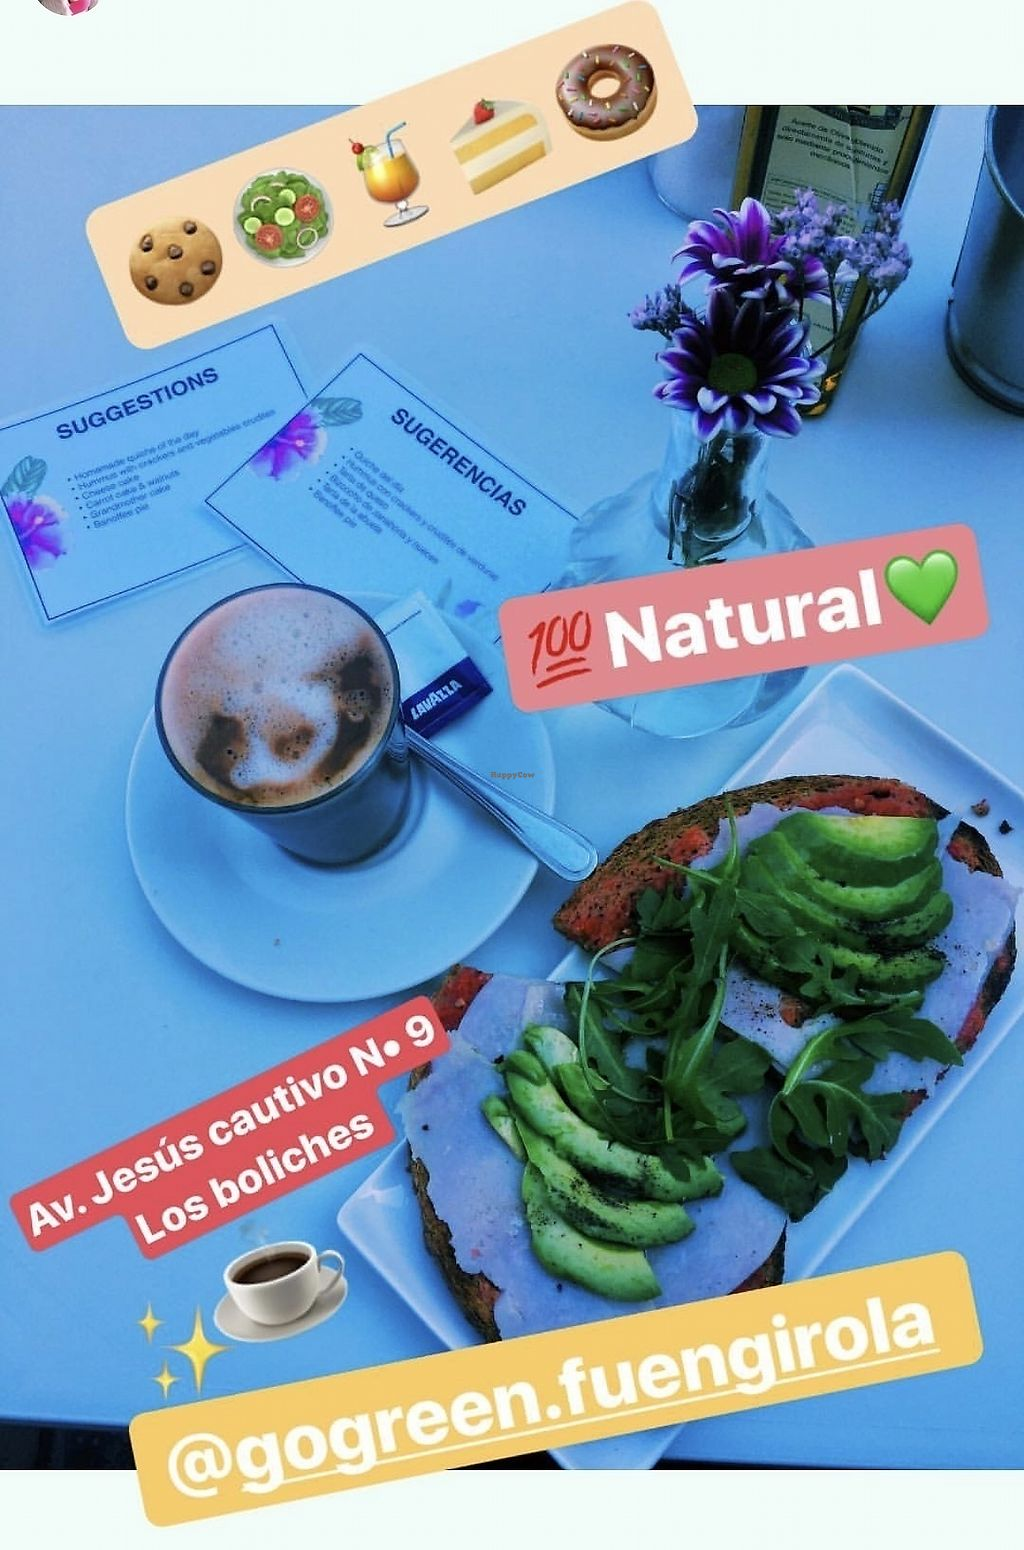 """Photo of Gogreen Fuengirola  by <a href=""""/members/profile/Gogreenfuengirola"""">Gogreenfuengirola</a> <br/>Avocado toast! <br/> October 25, 2017  - <a href='/contact/abuse/image/103023/318668'>Report</a>"""